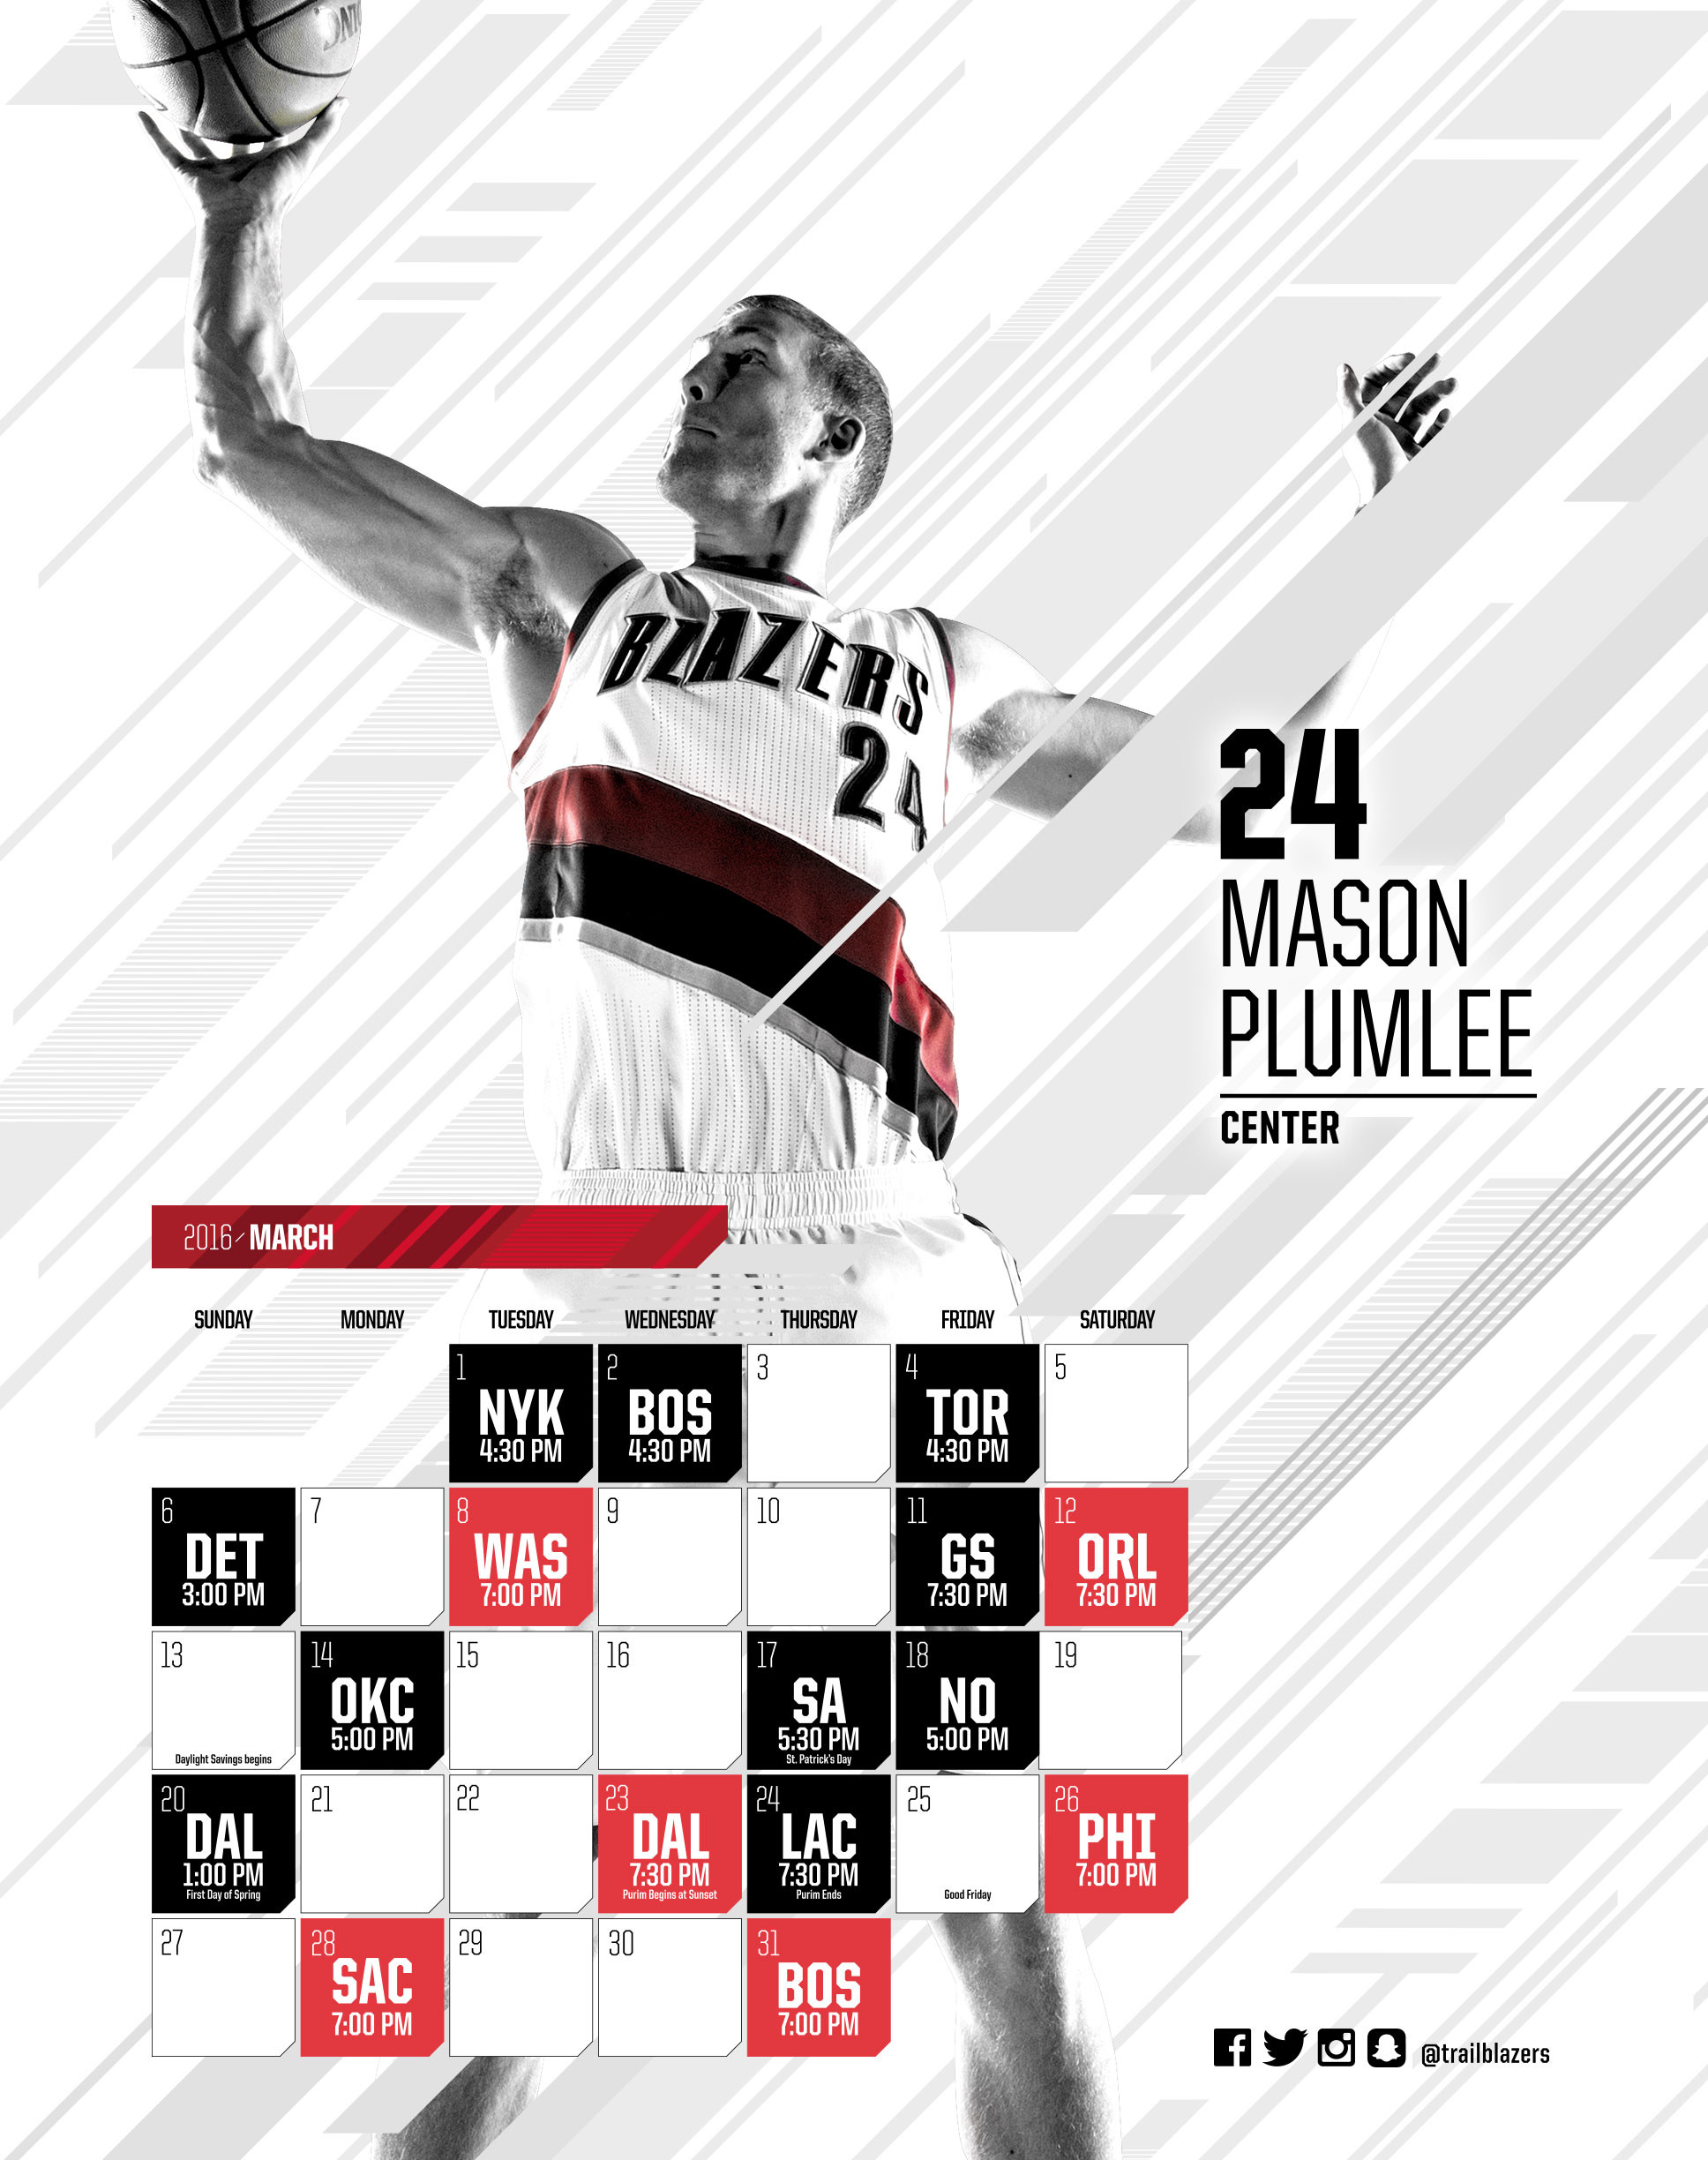 1936x2448 Wallpapers Portland Trail Blazers · Nba Blazers Schedule Photo Album -  Watch Out, There's a Clothes About. Nba Blazers Schedule Photo Album Watch  Out ...